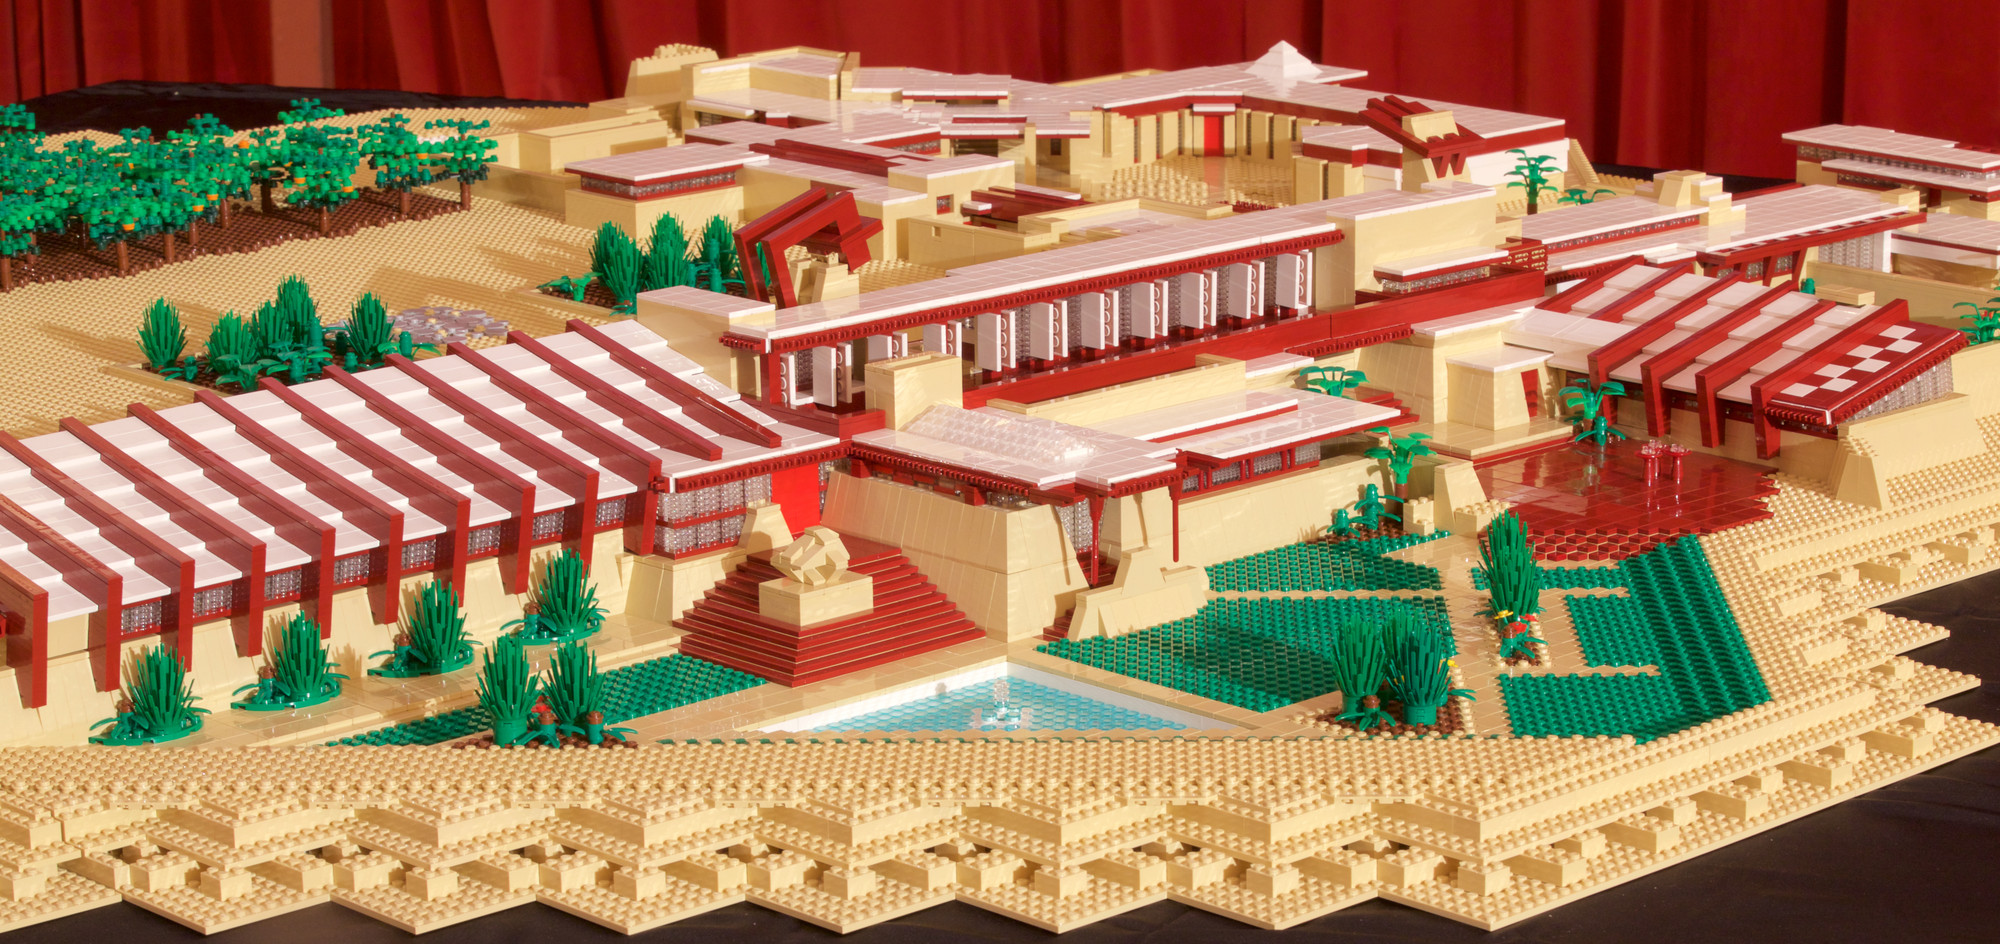 taliesin west reconstructed as largest frank lloyd wright lego